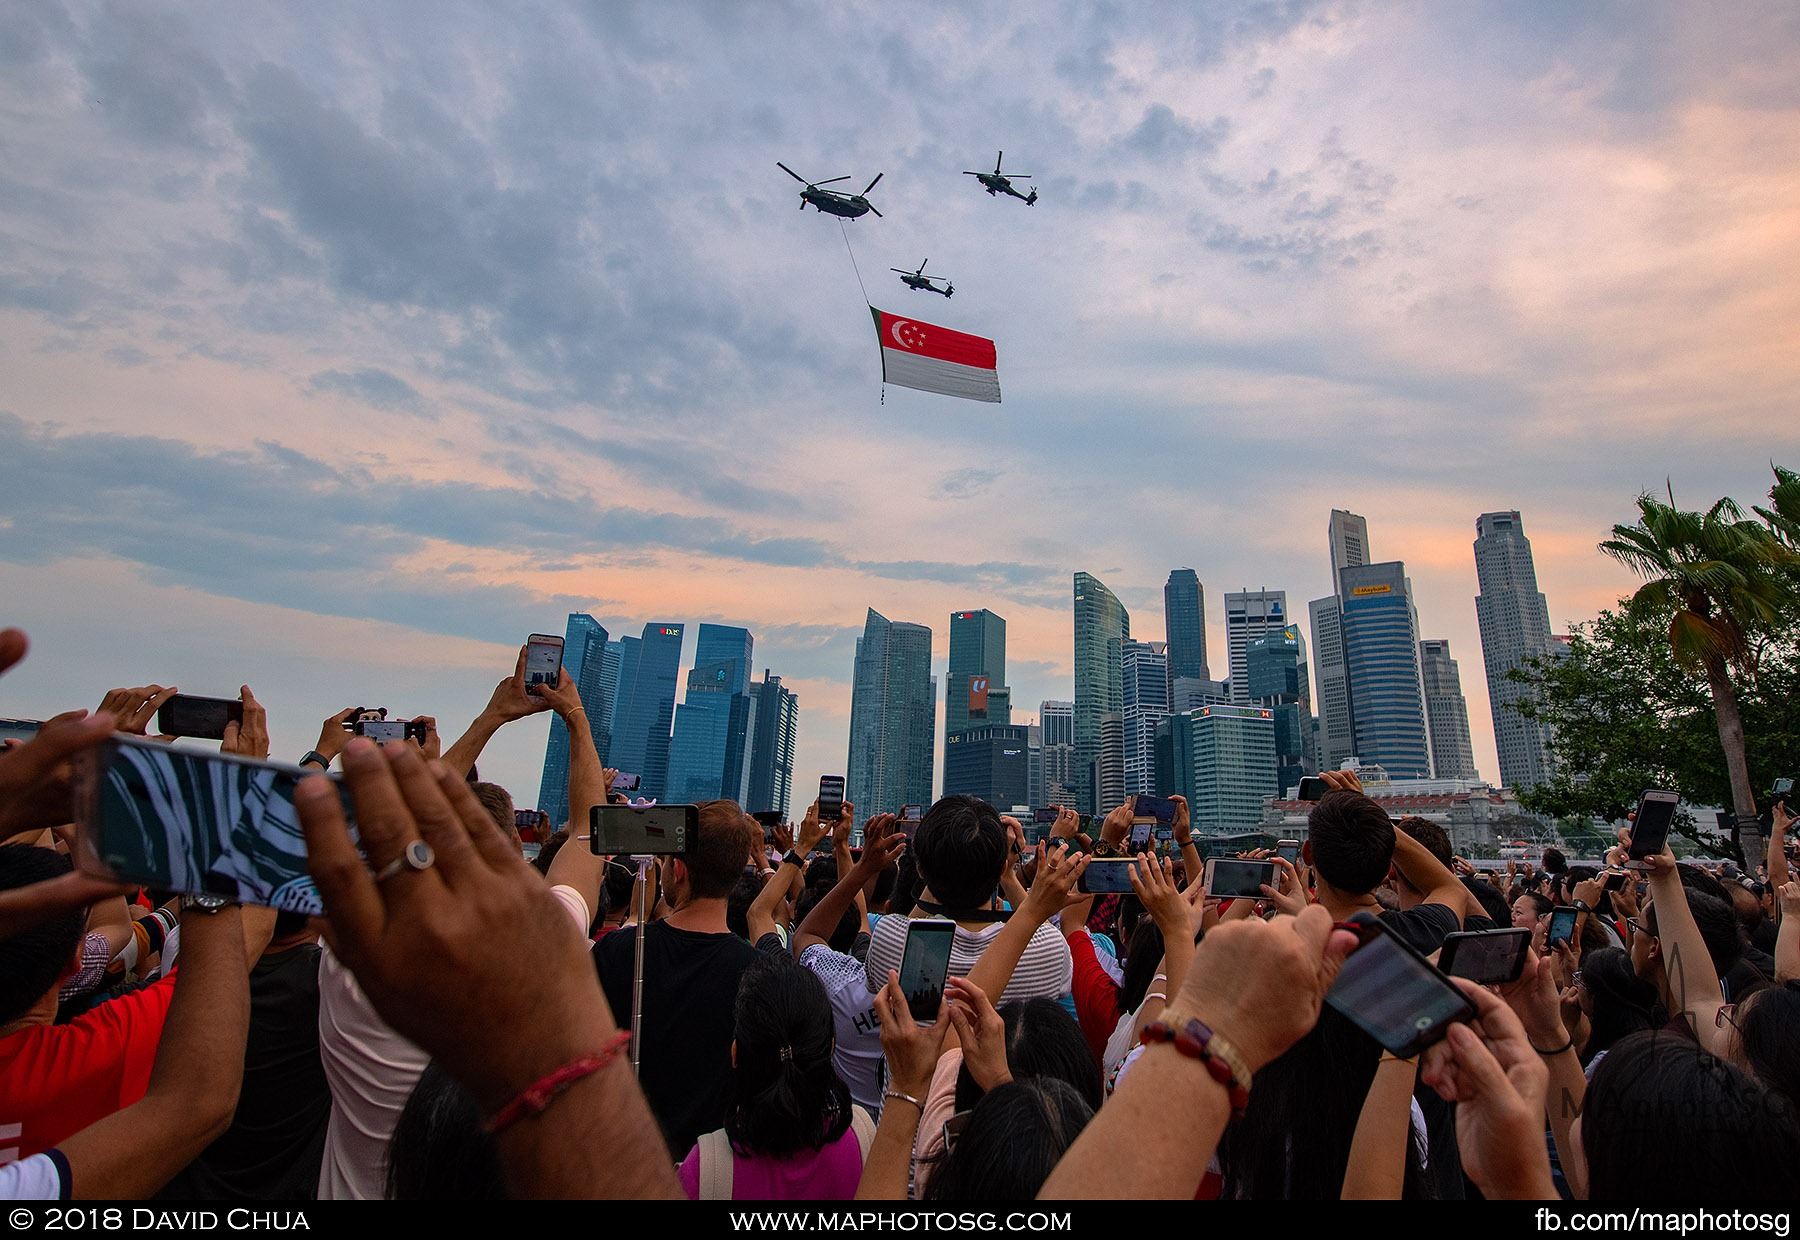 18. Everybody in the crowd at Esplanade waterfront tries to get a photo or video of the state flag fly past.